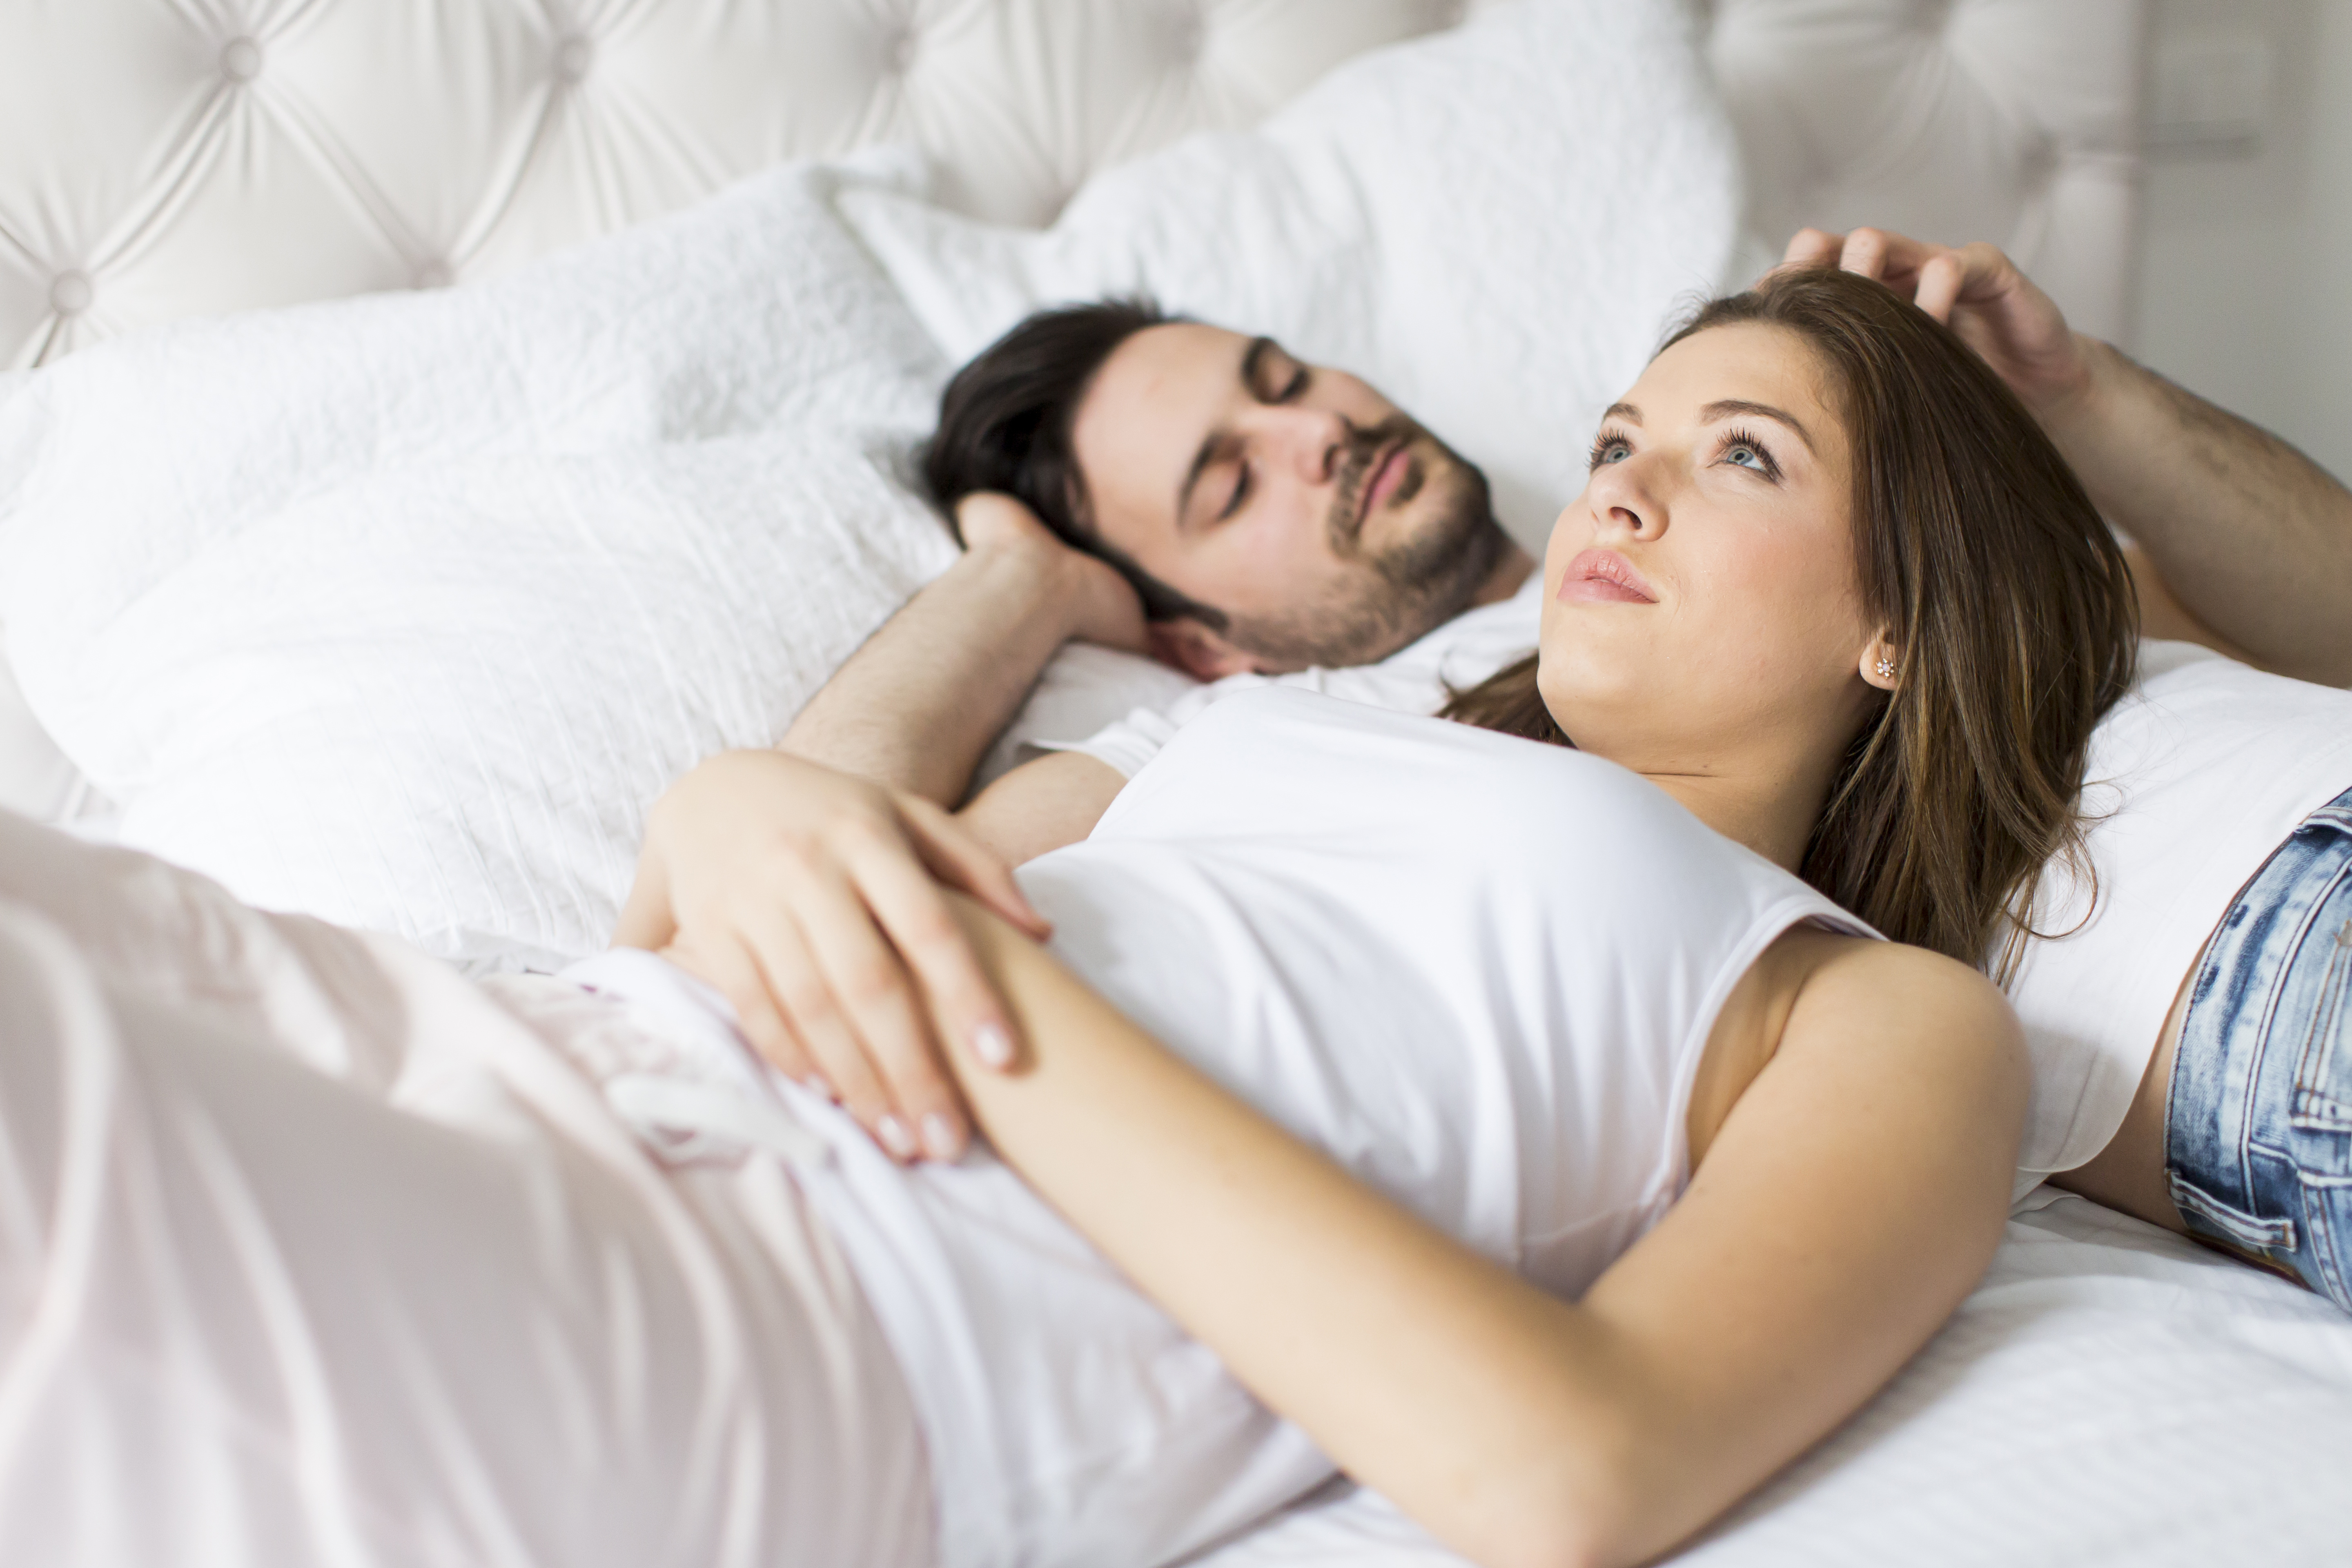 Sexual Purity for Women